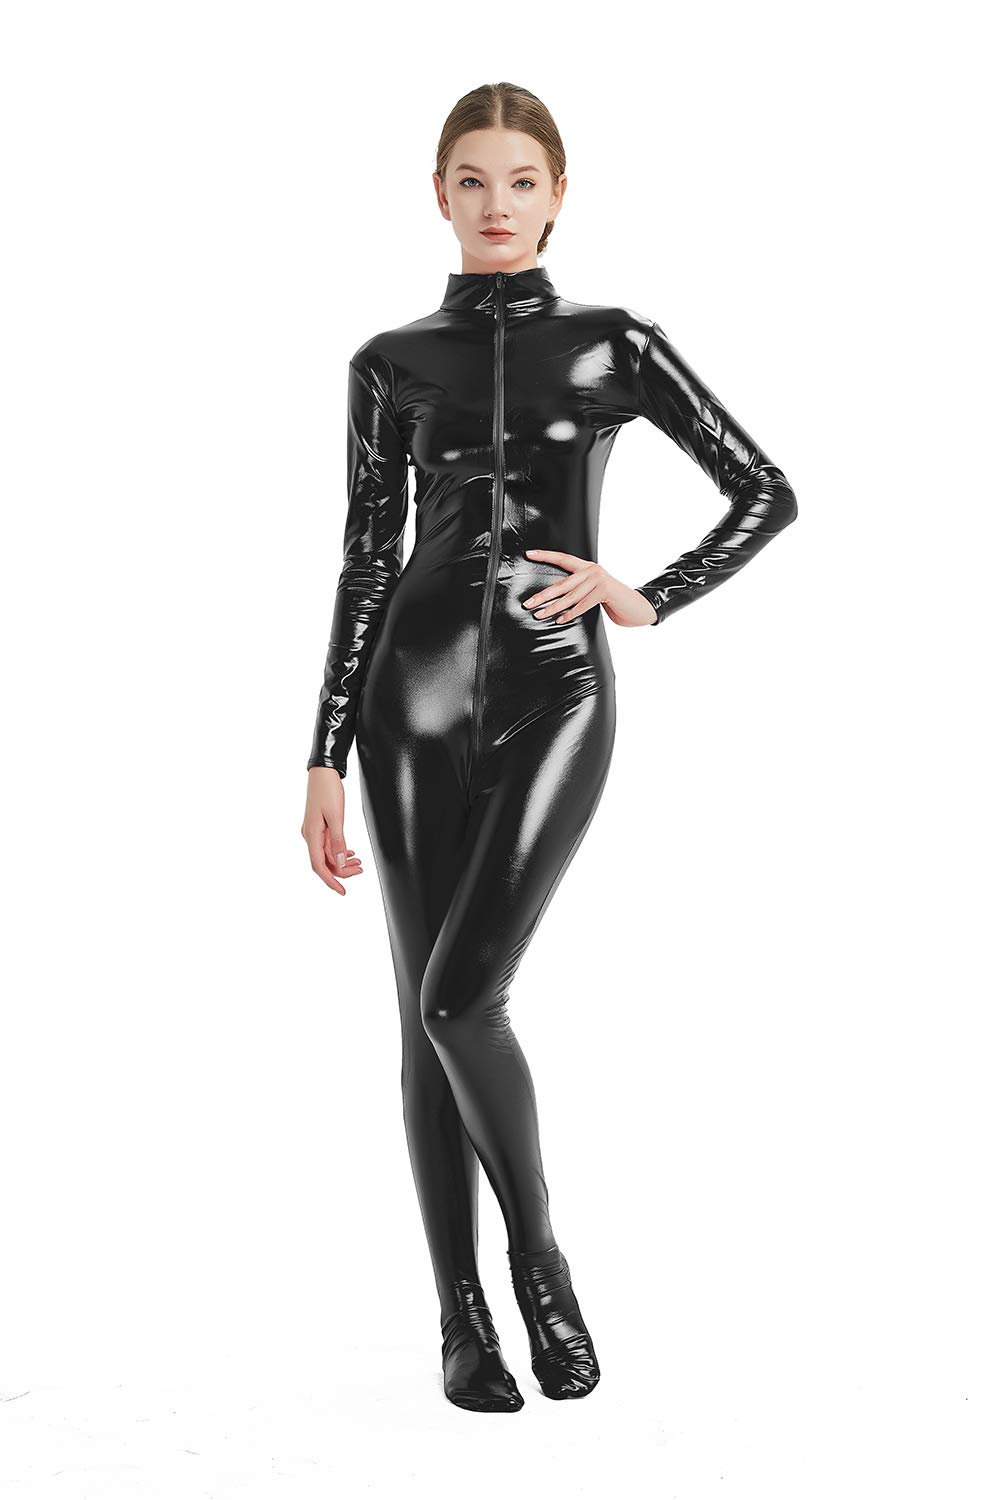 Full Bodysuit Womens Shiny Metallic Without Hood and Gloves Front Zipper Lycra Adult Costume Zentai 61o2EvknN4L